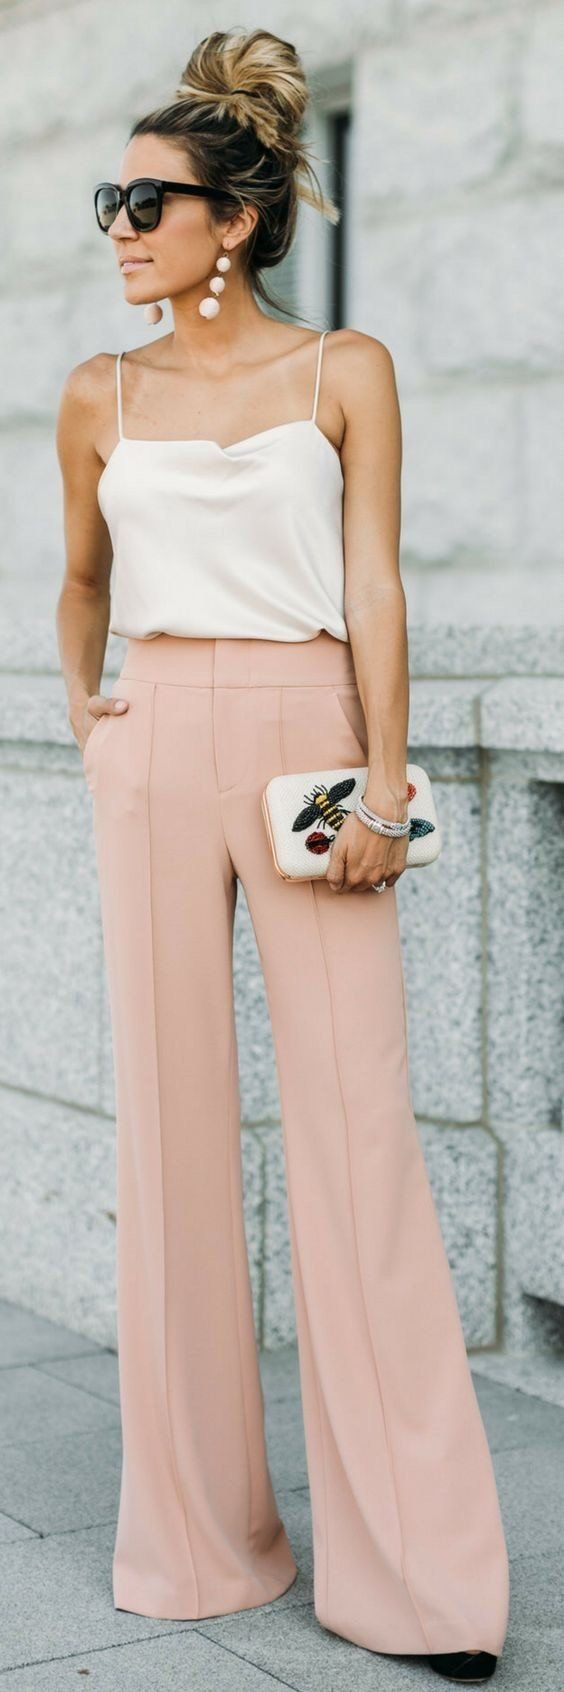 44 best CITY CHIC images on Pinterest | City chic, Street chic and ...